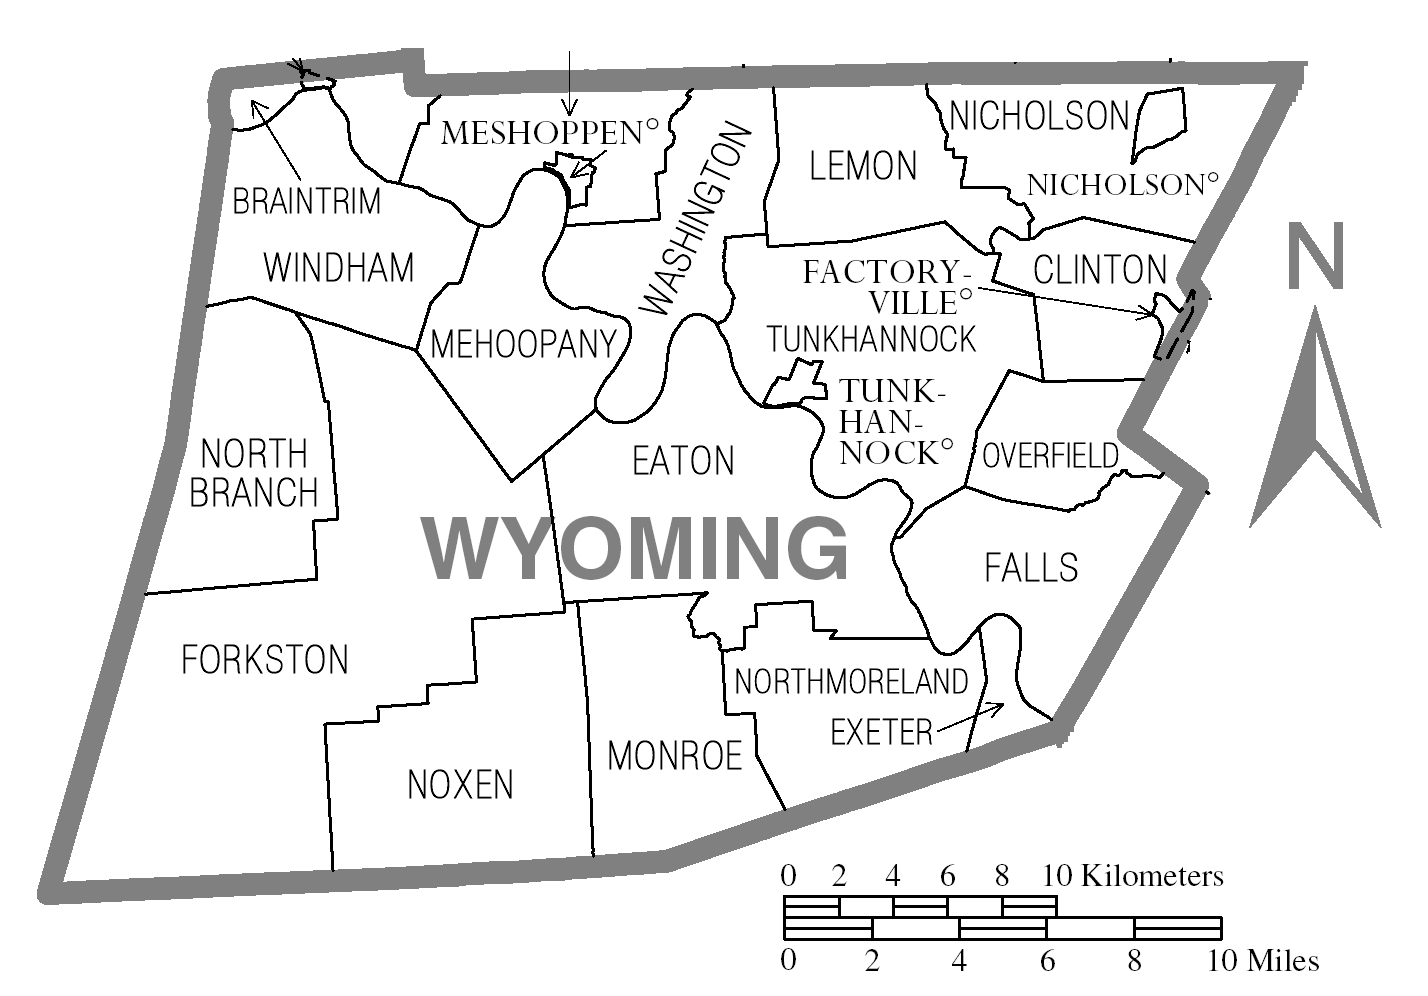 FileMap Of Wyoming County Pennsylvaniapng Wikimedia Commons - Wyoming county maps